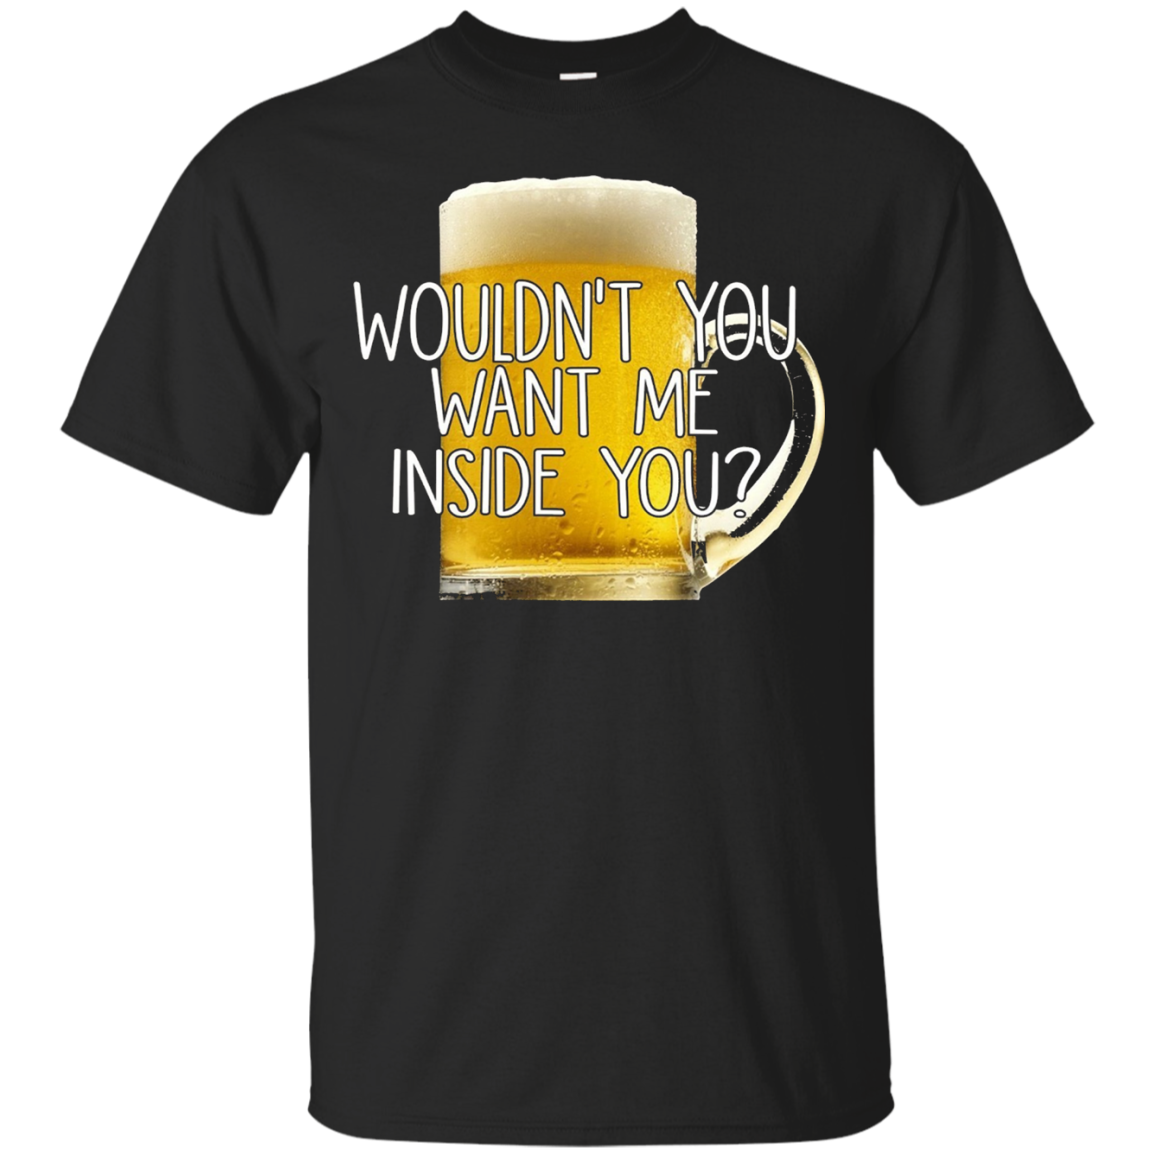 WOULDN'T YOU WANT ME INSIDE YOU TSHIRT – T-Shirt